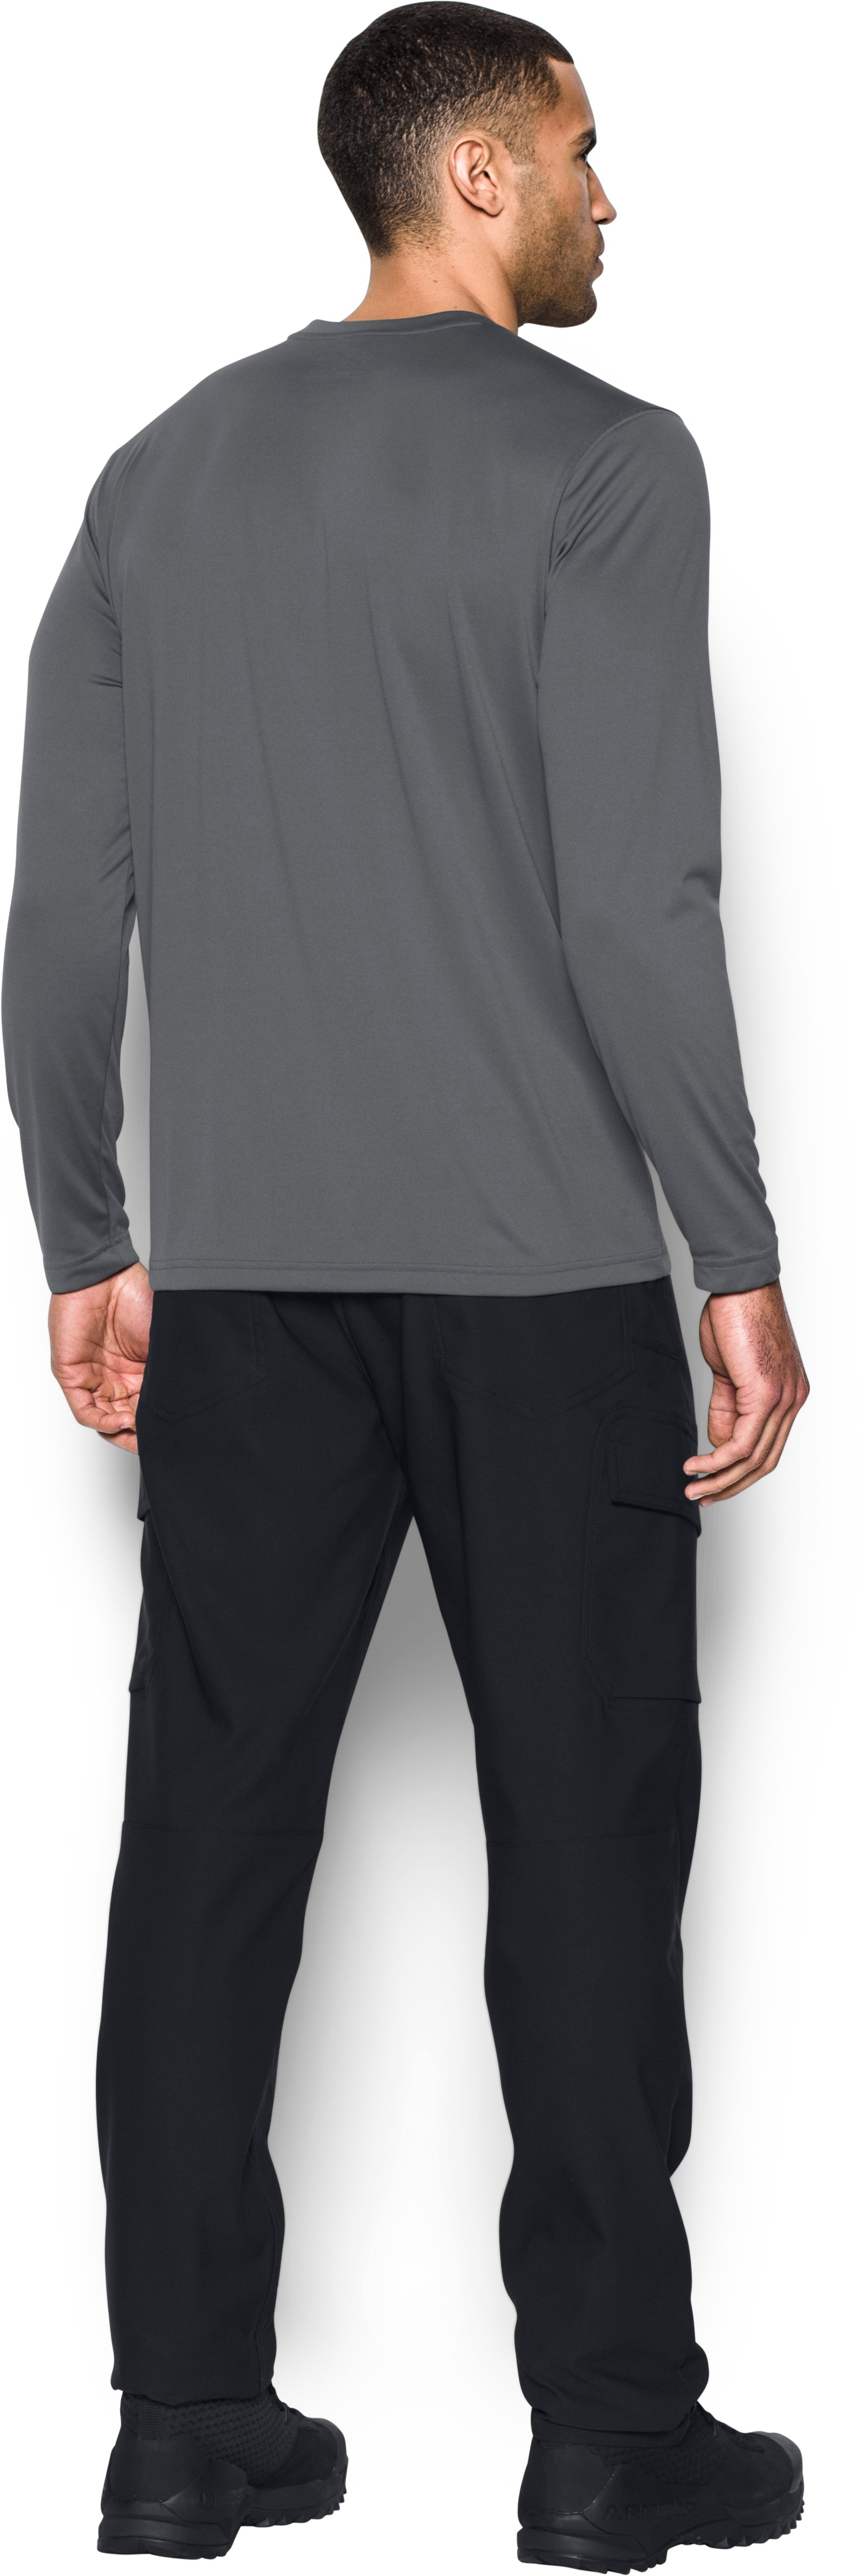 Men's Tactical UA Tech™ Long Sleeve T-Shirt, Graphite, Back